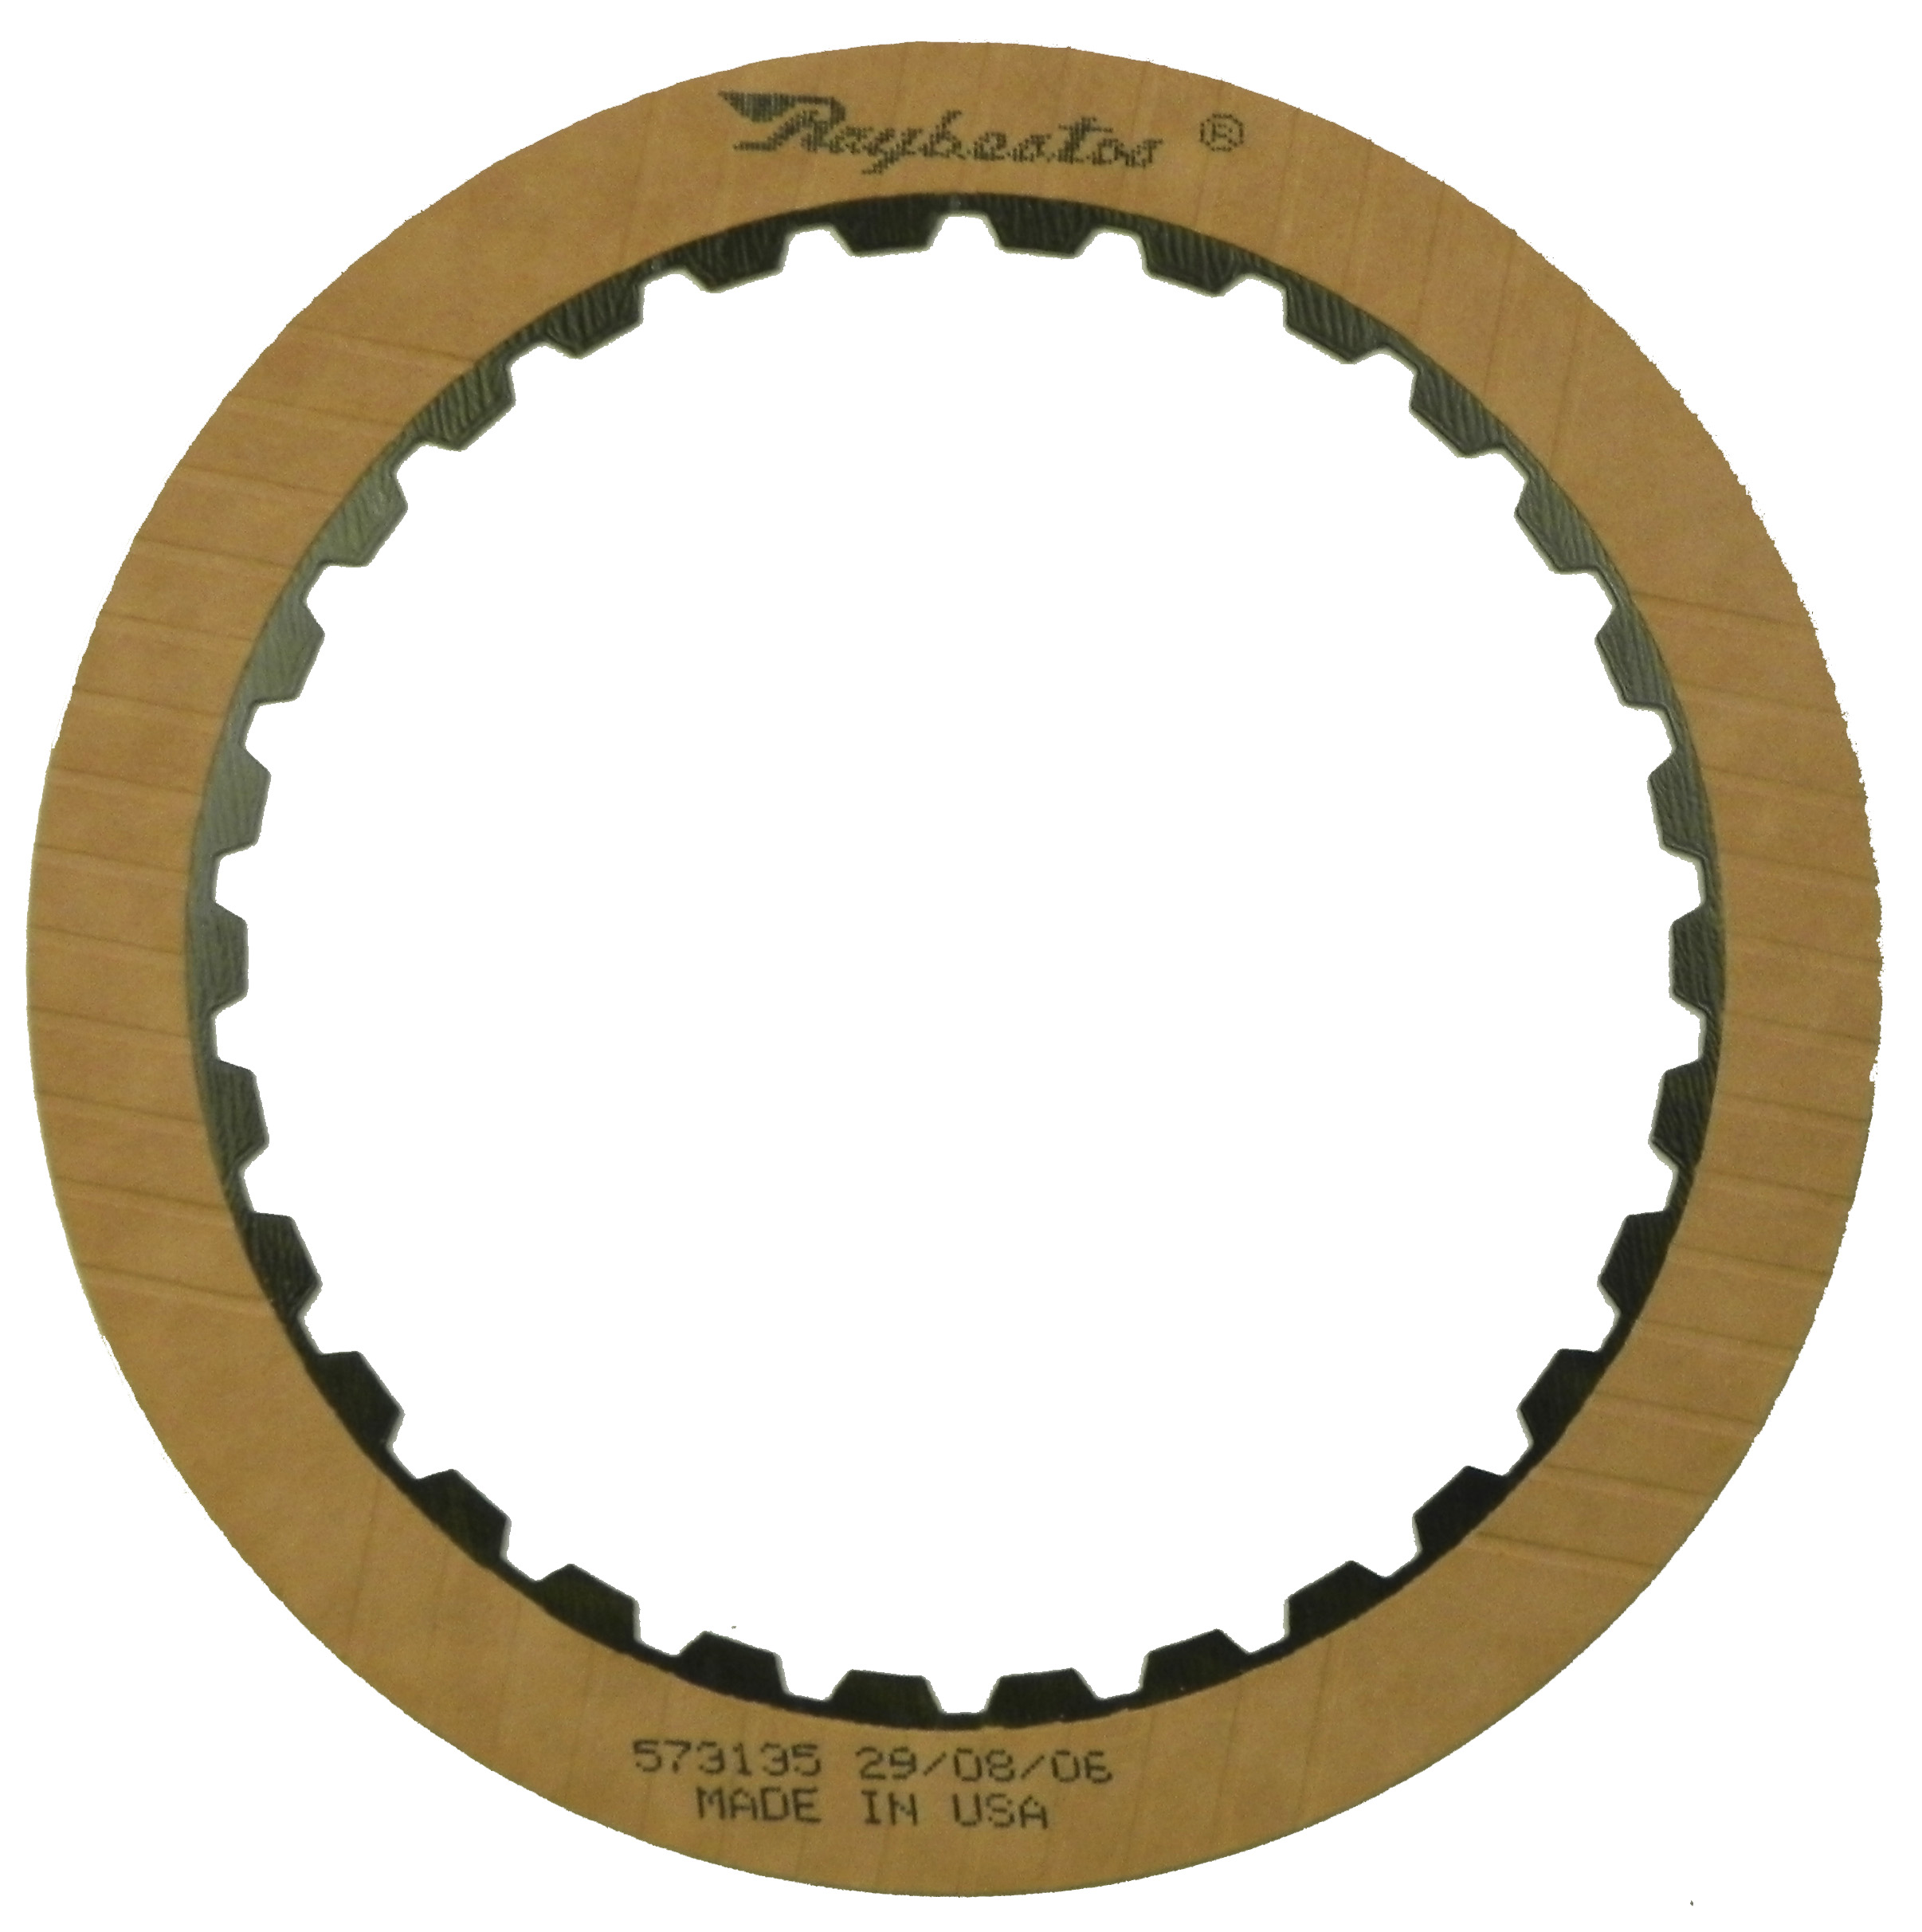 R573135 | 2005-ON Friction Clutch Plate OE Replacement Front, Low